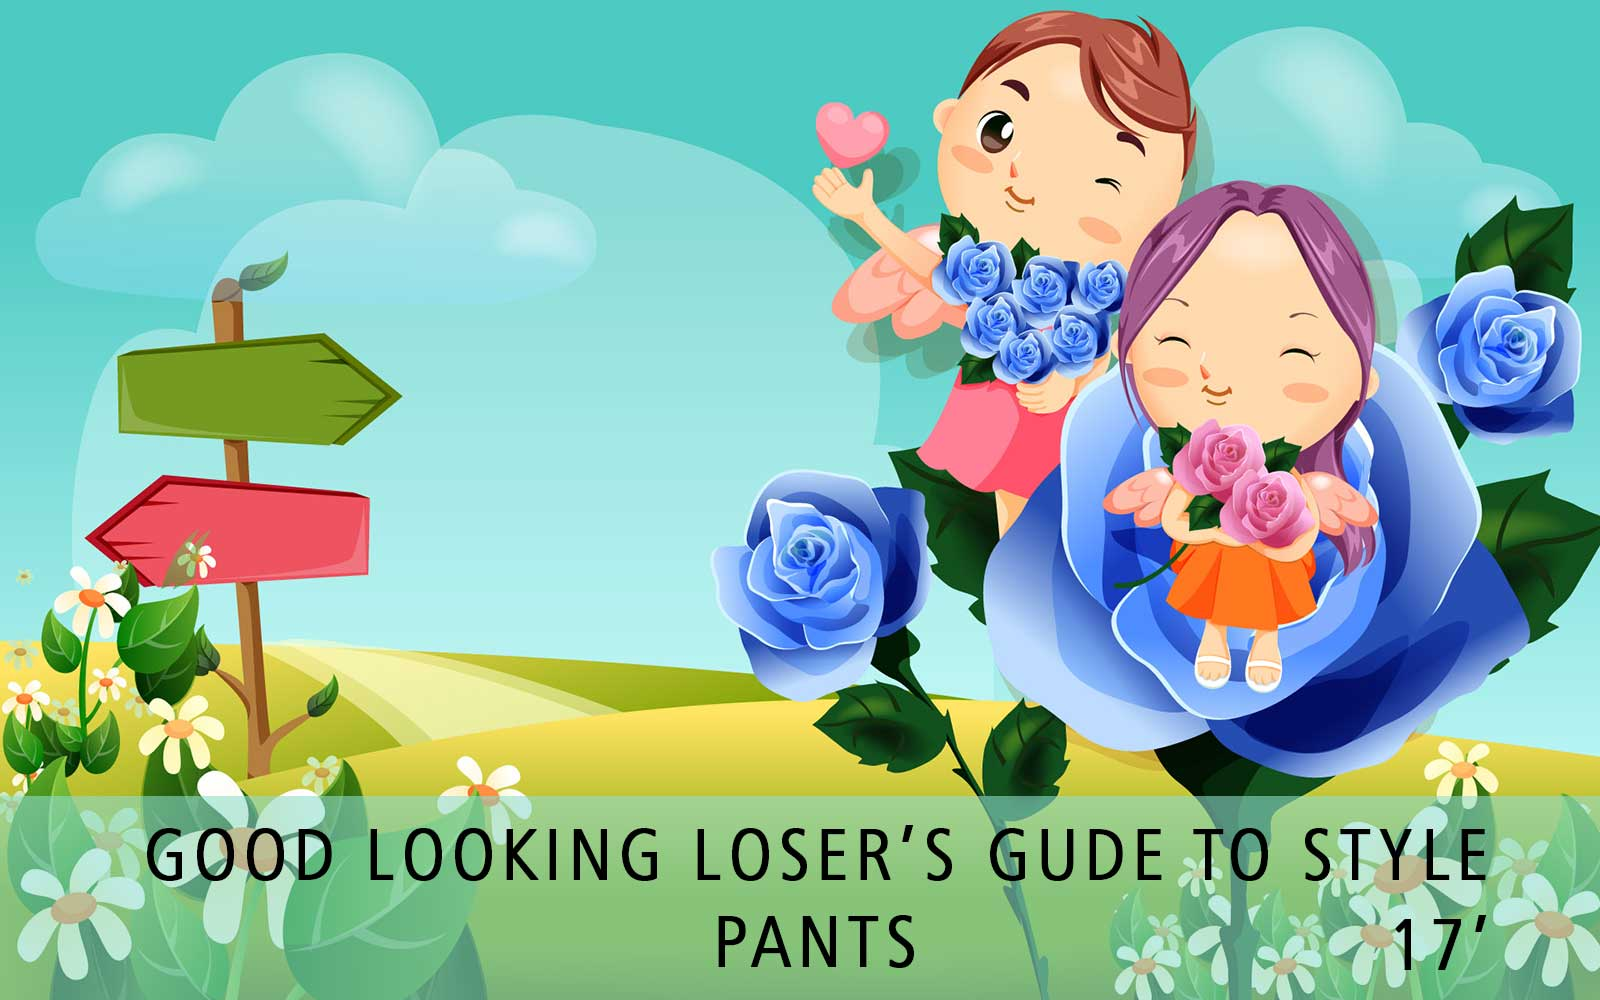 Good Looking Loser's Summer 2017 Guide to Style (Pants)